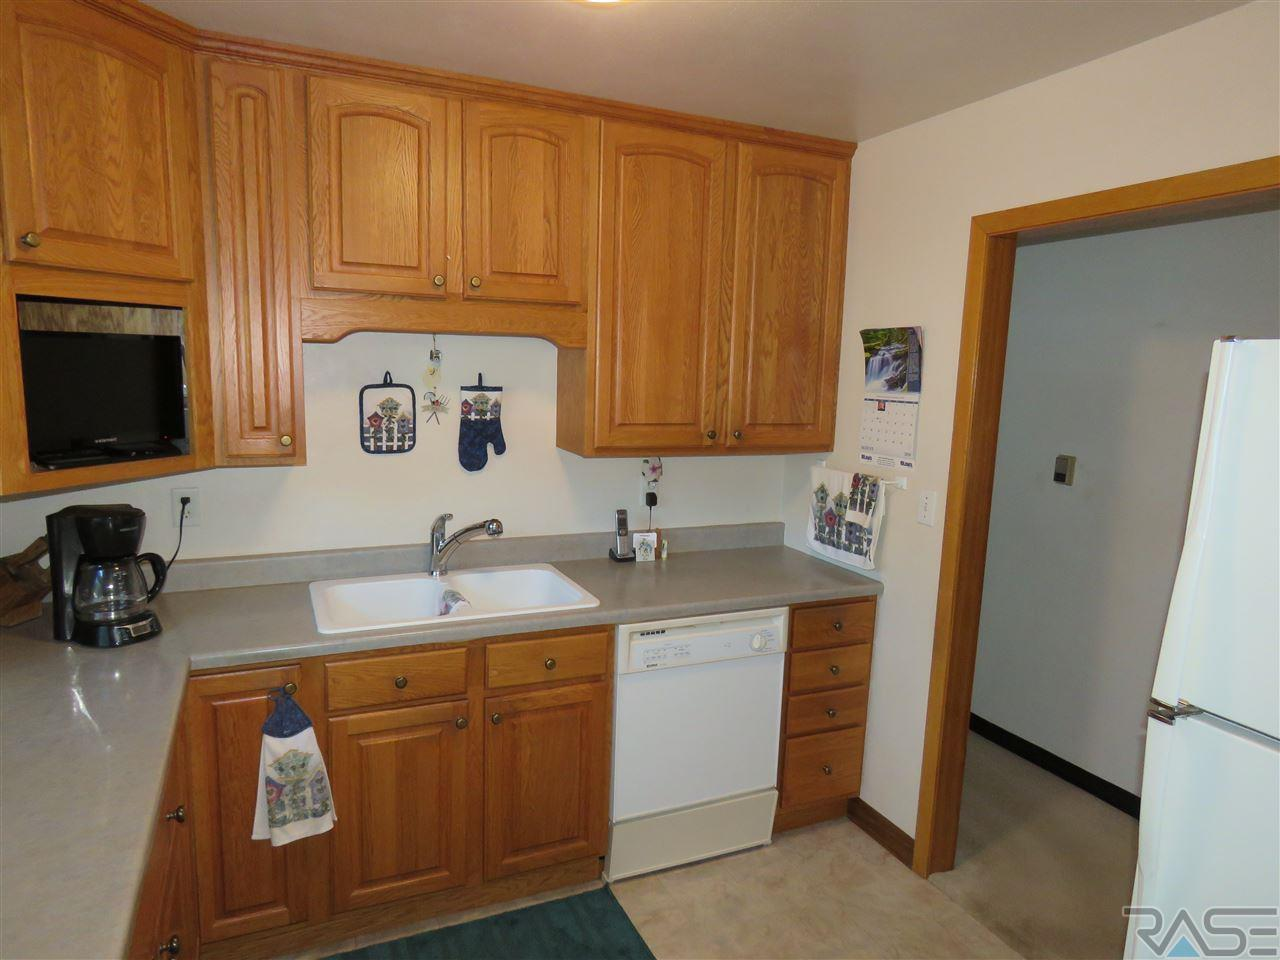 Listing: 1428 S Olive Dr, Sioux Falls, SD.| MLS# 21804705 | Sioux ...